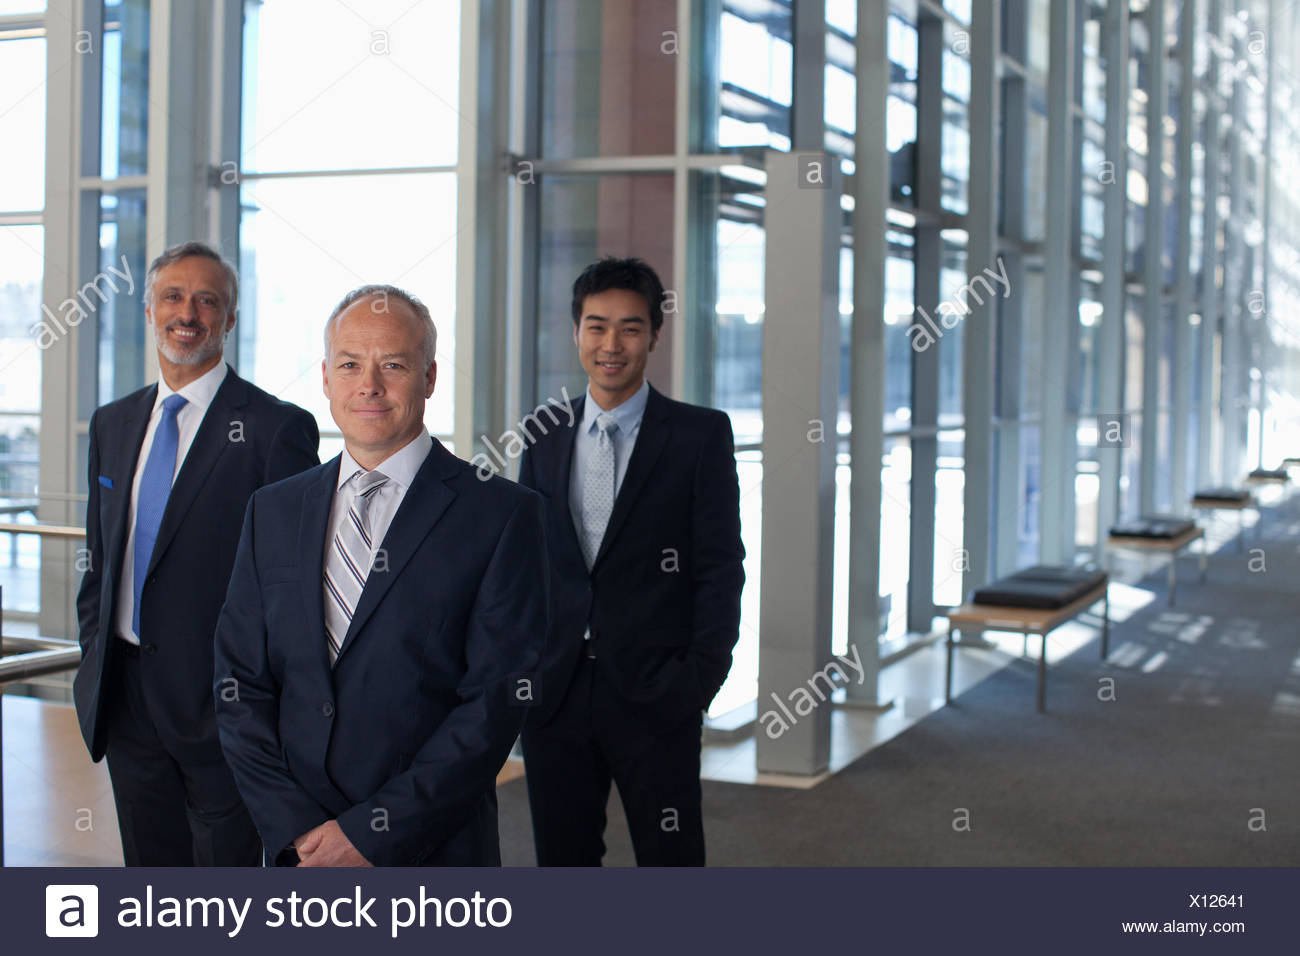 Business people in office lobby - Stock Image